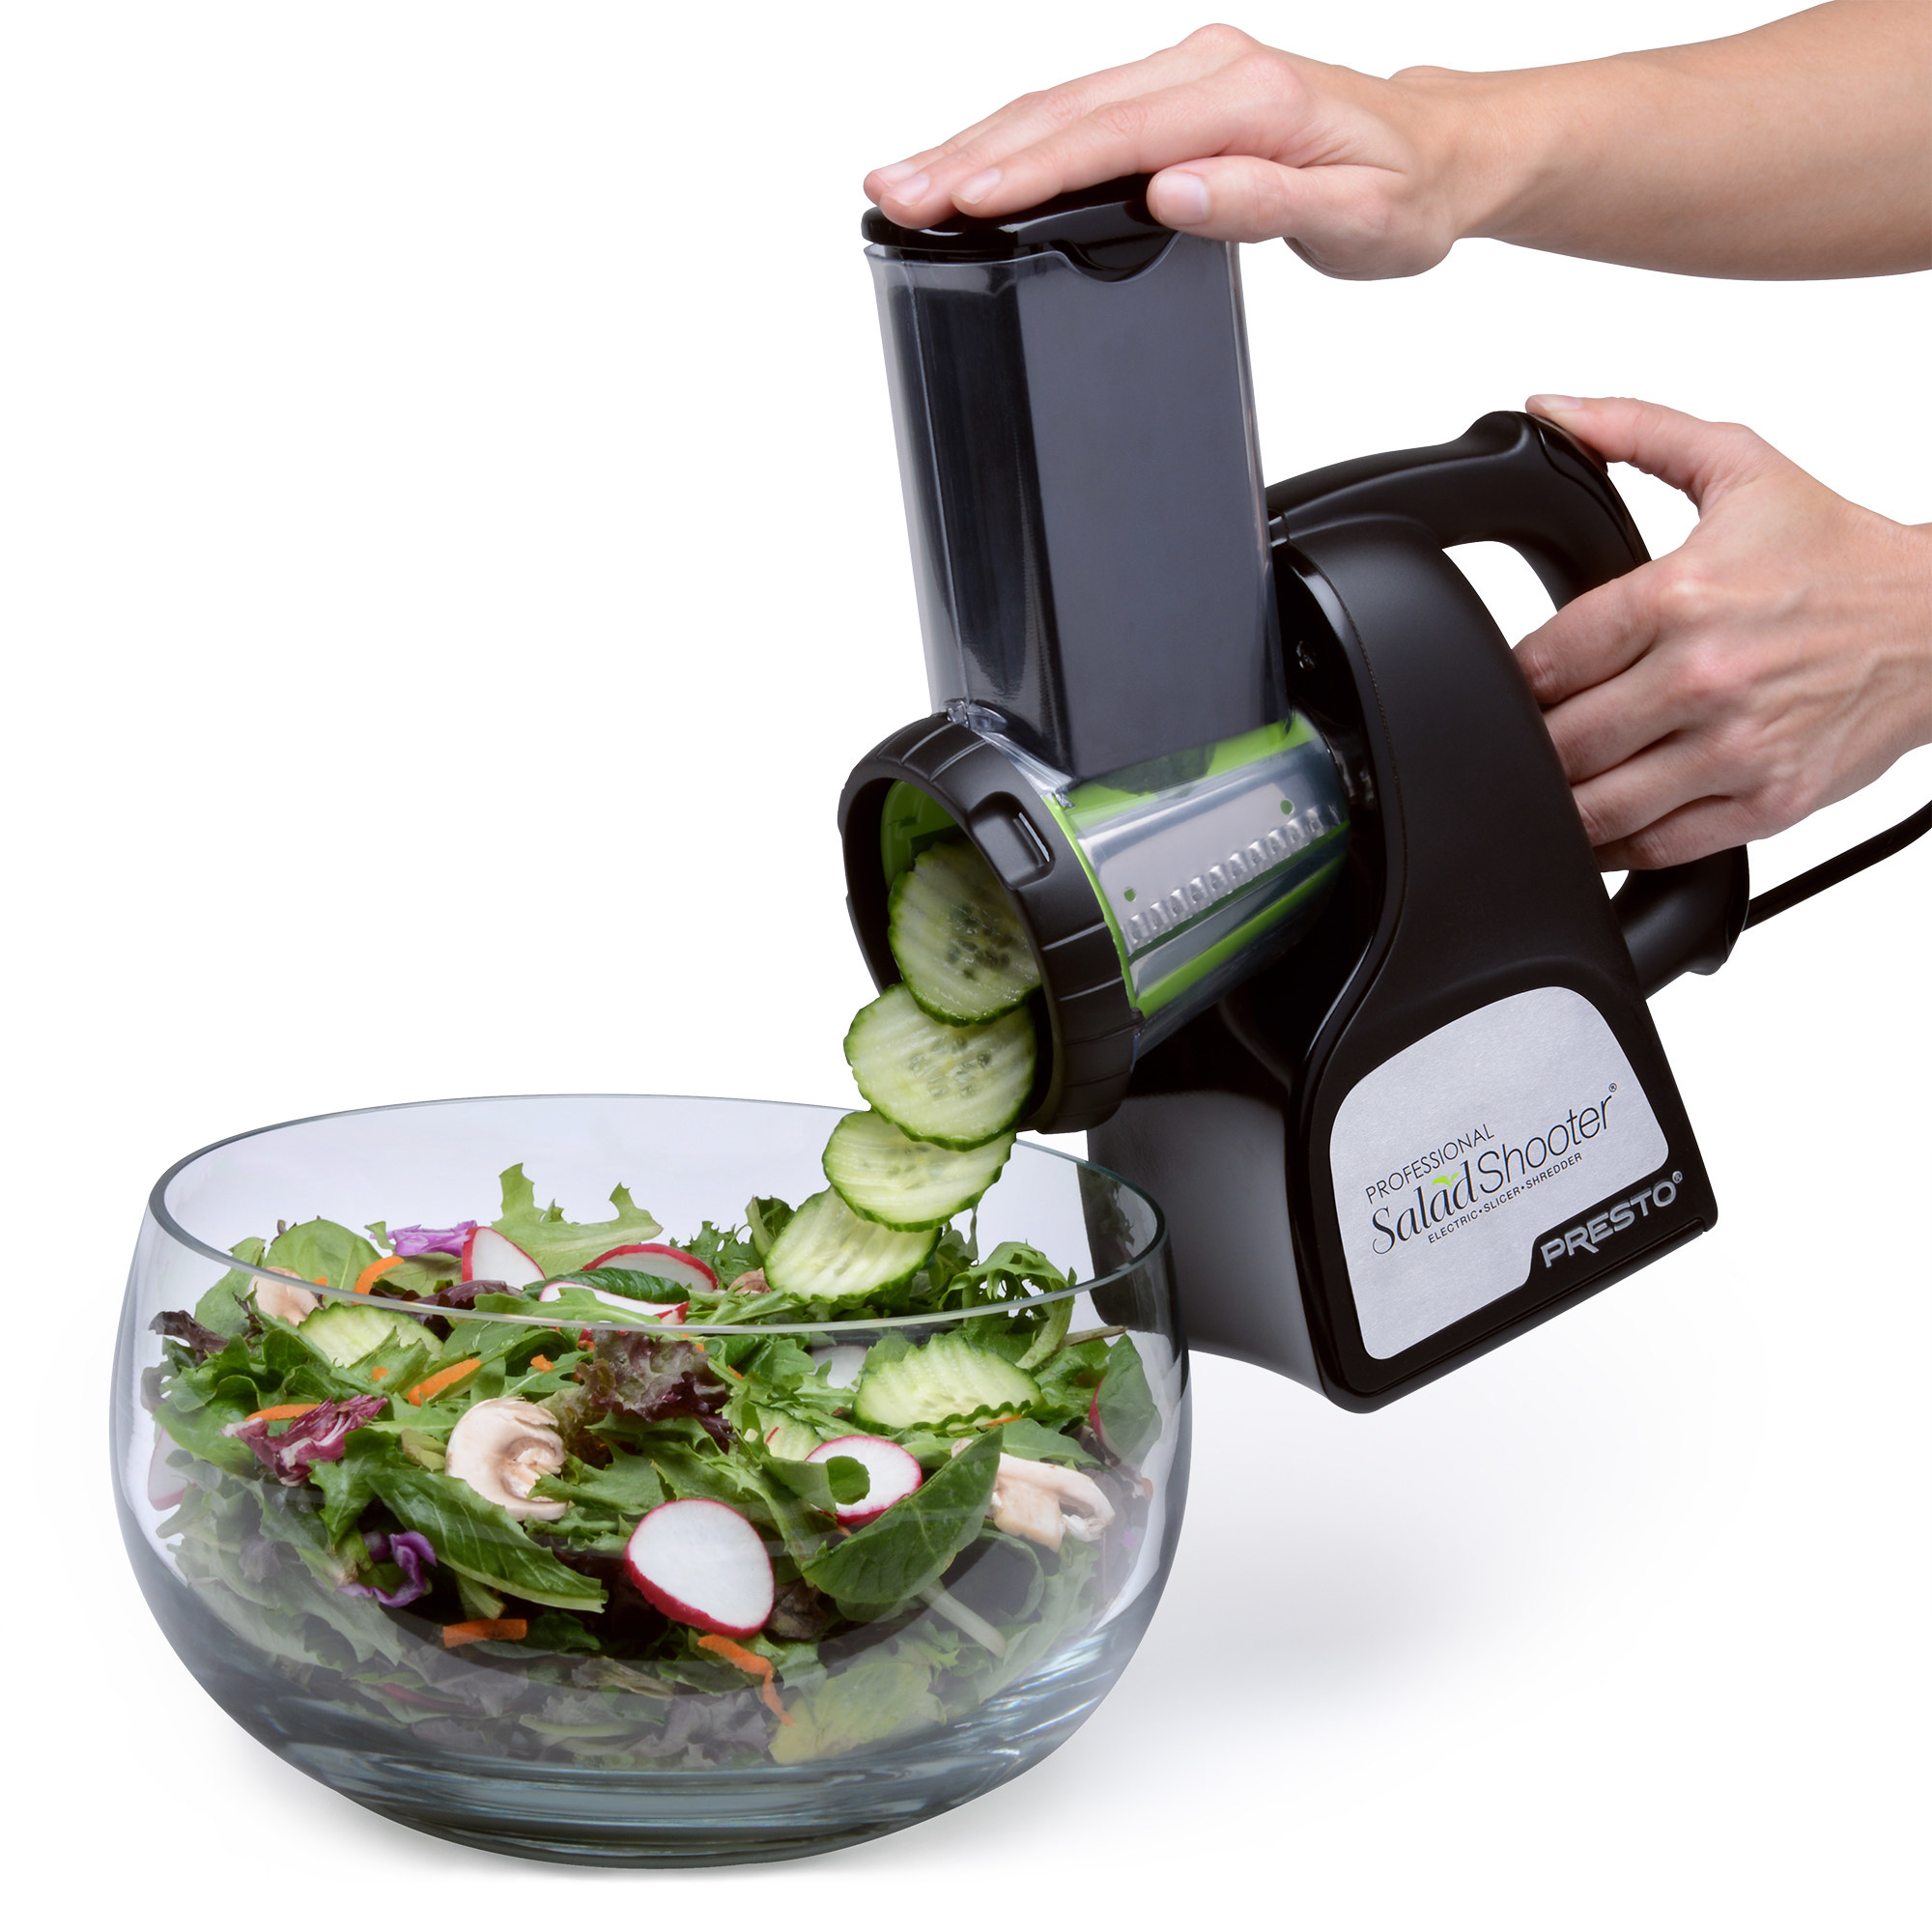 Professional Salad Shooter electrically cutting vegetables that land into a salad bowl